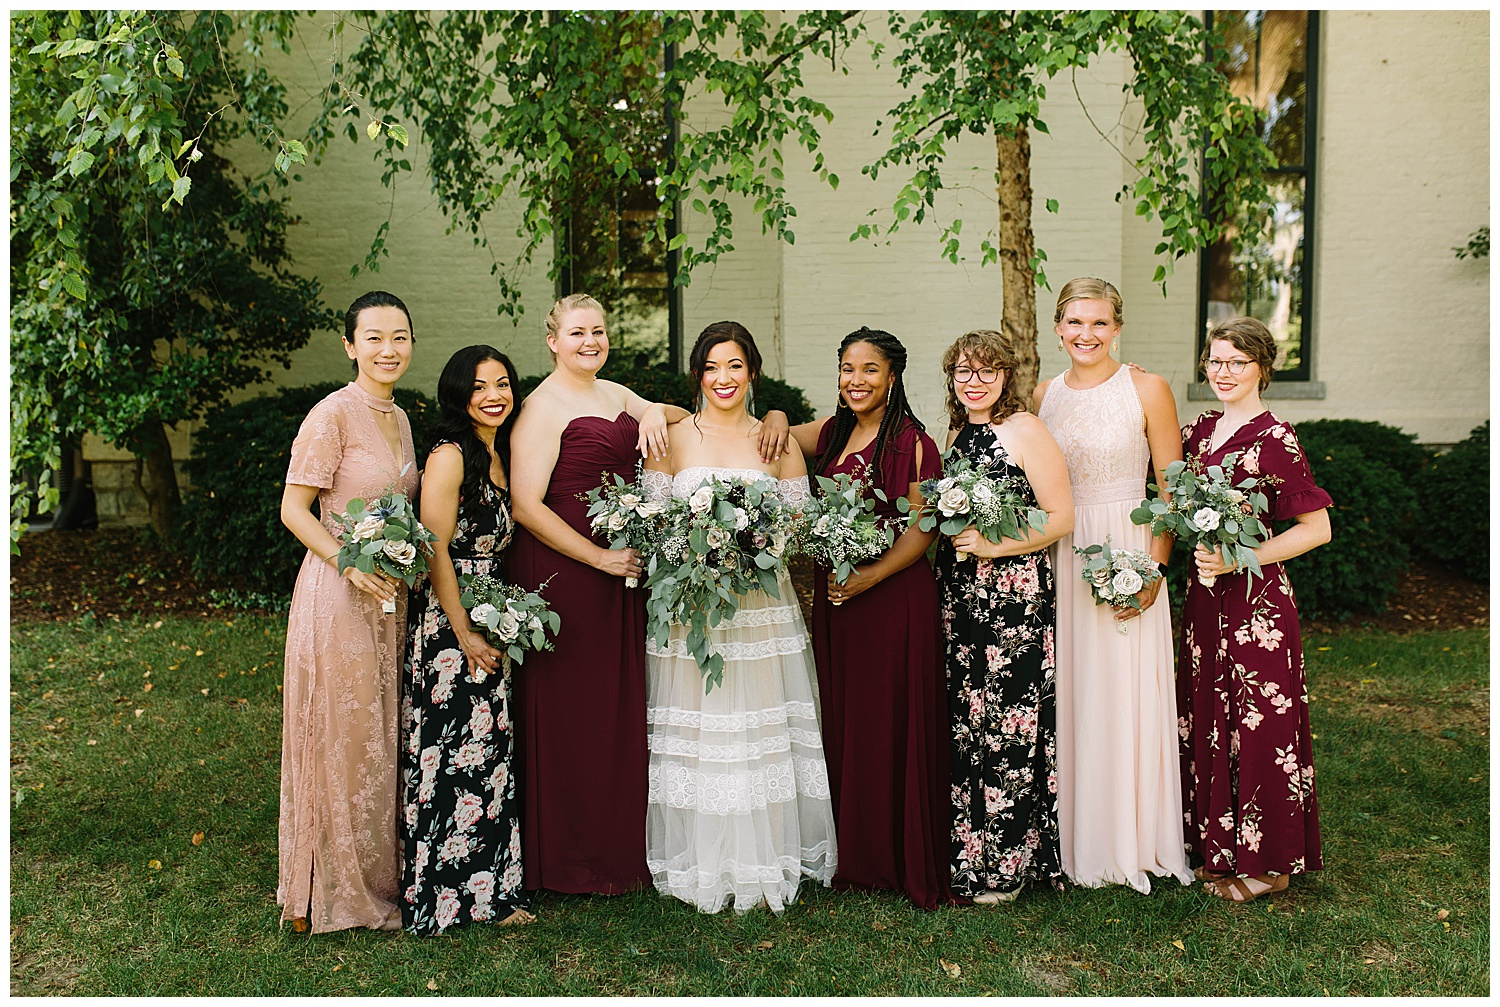 trent.and.kendra.photography.wedding.peterson.dumesnil.house-80.jpg